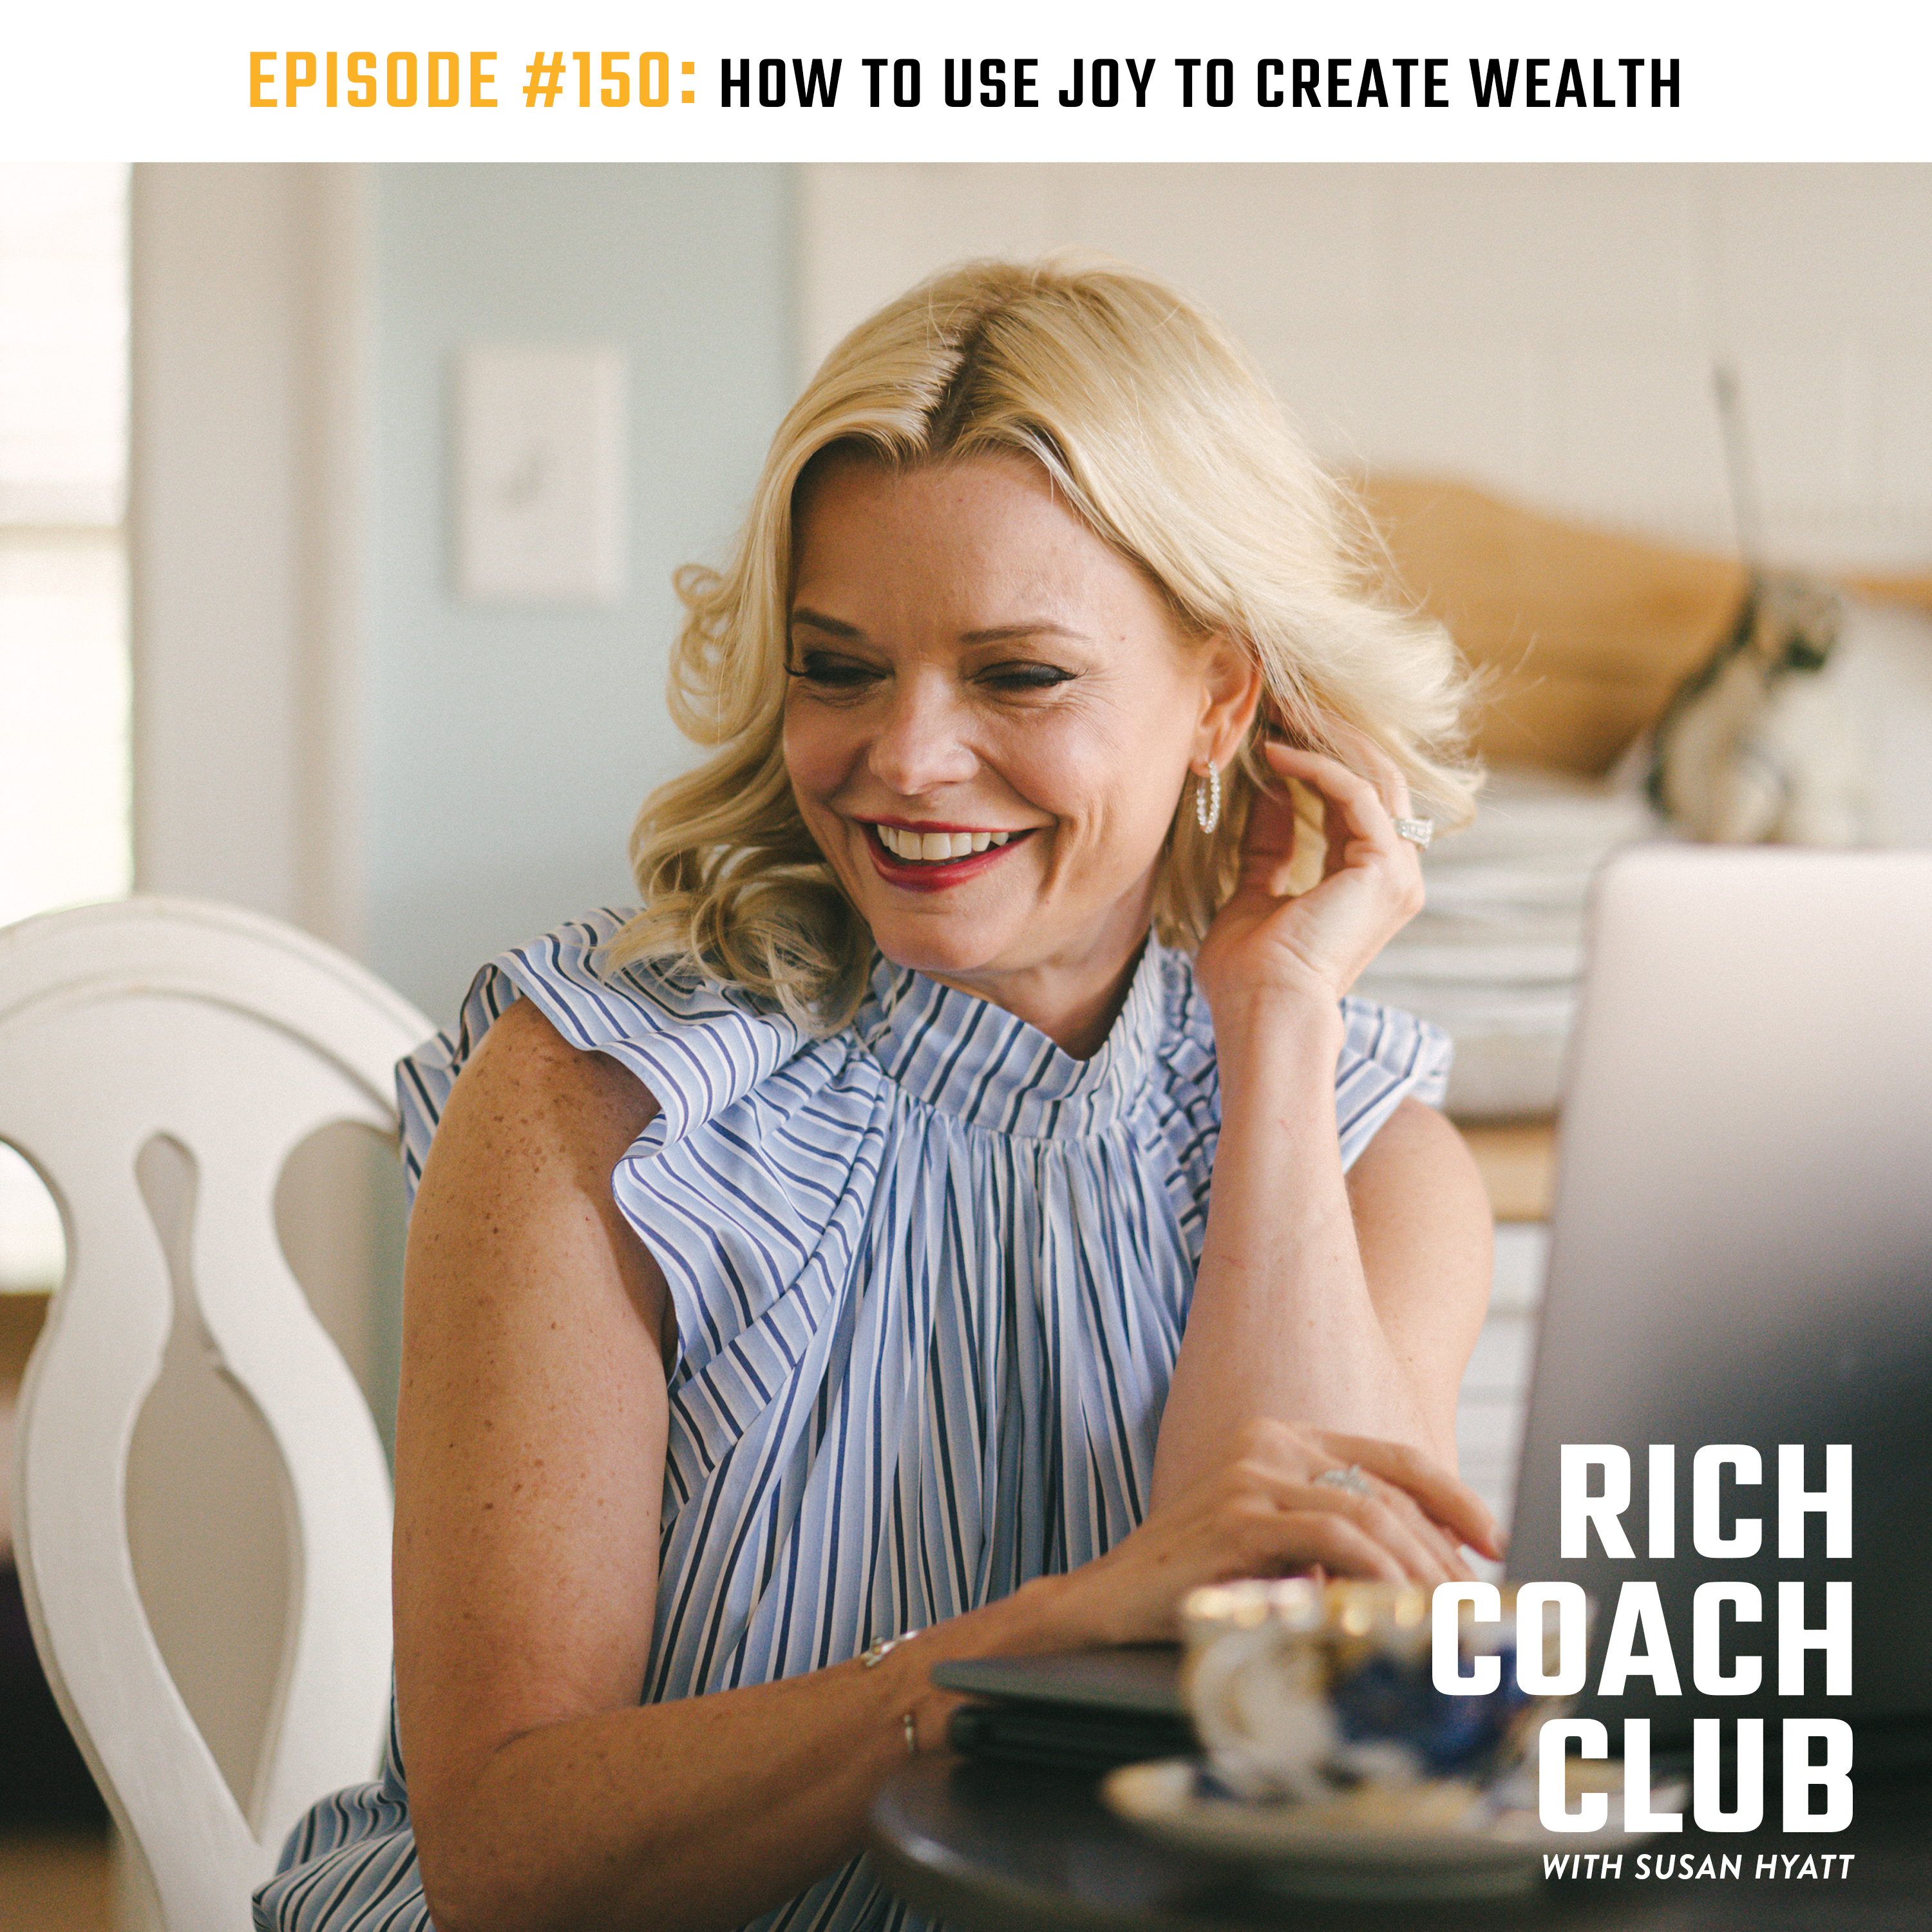 How to Use Joy to Create Wealth